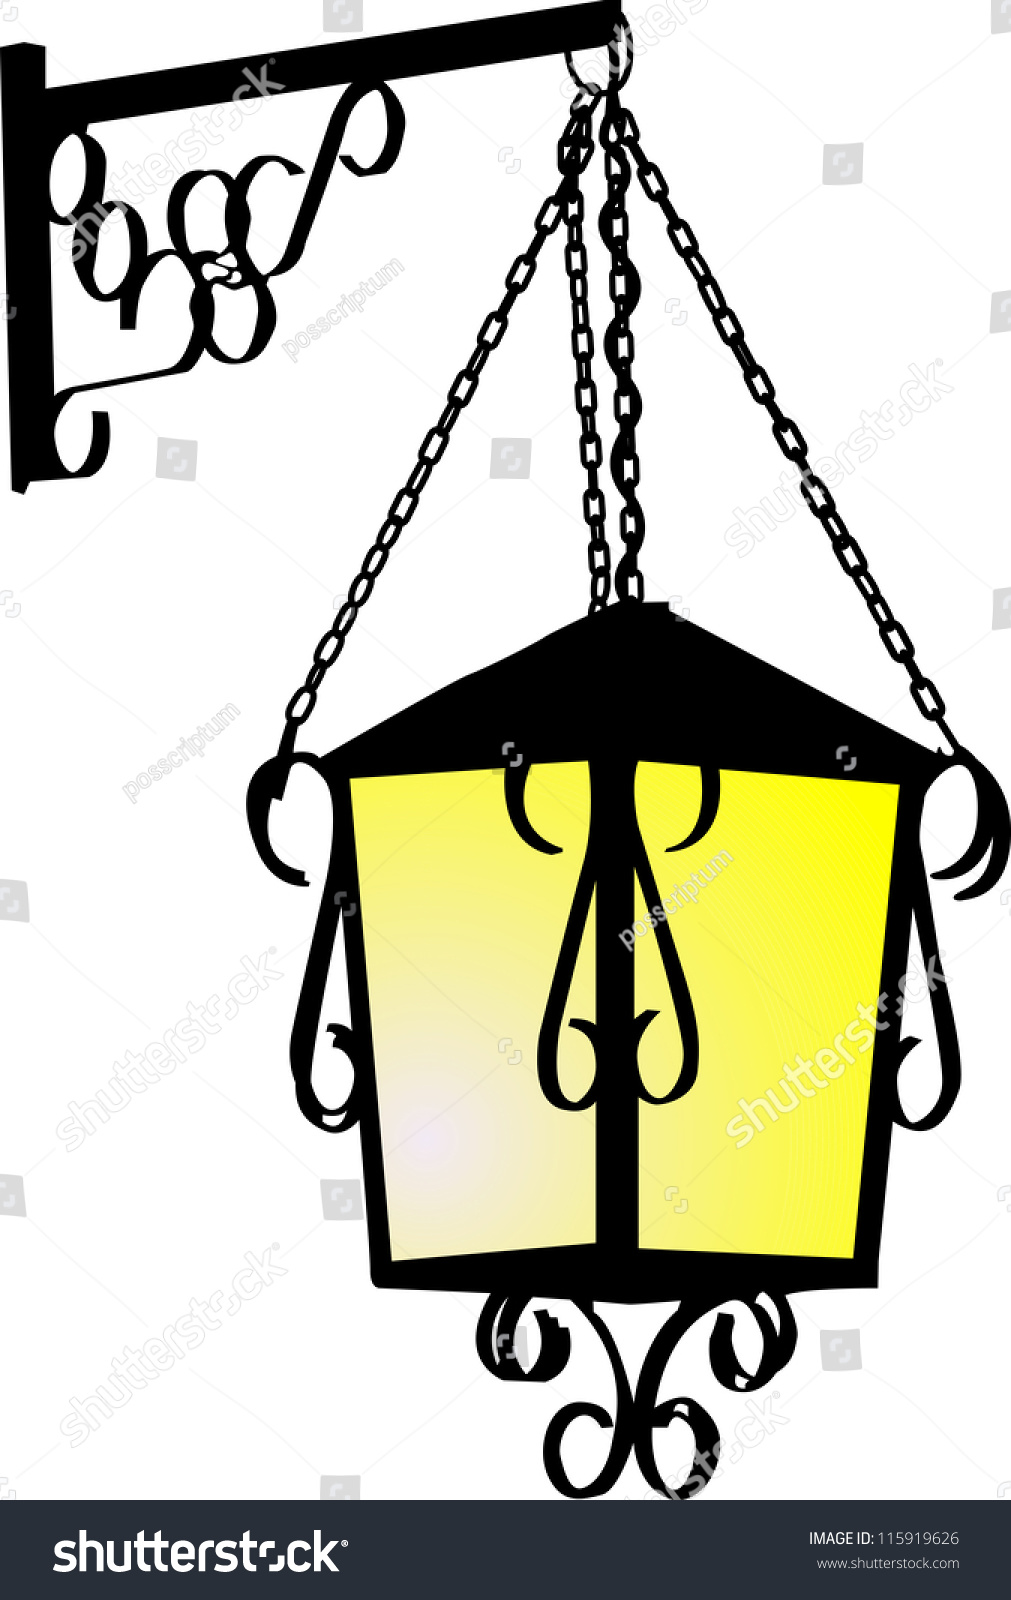 Wall Lamps Vector : Vector Silhouette Of A Street Wall Lamp - 115919626 : Shutterstock